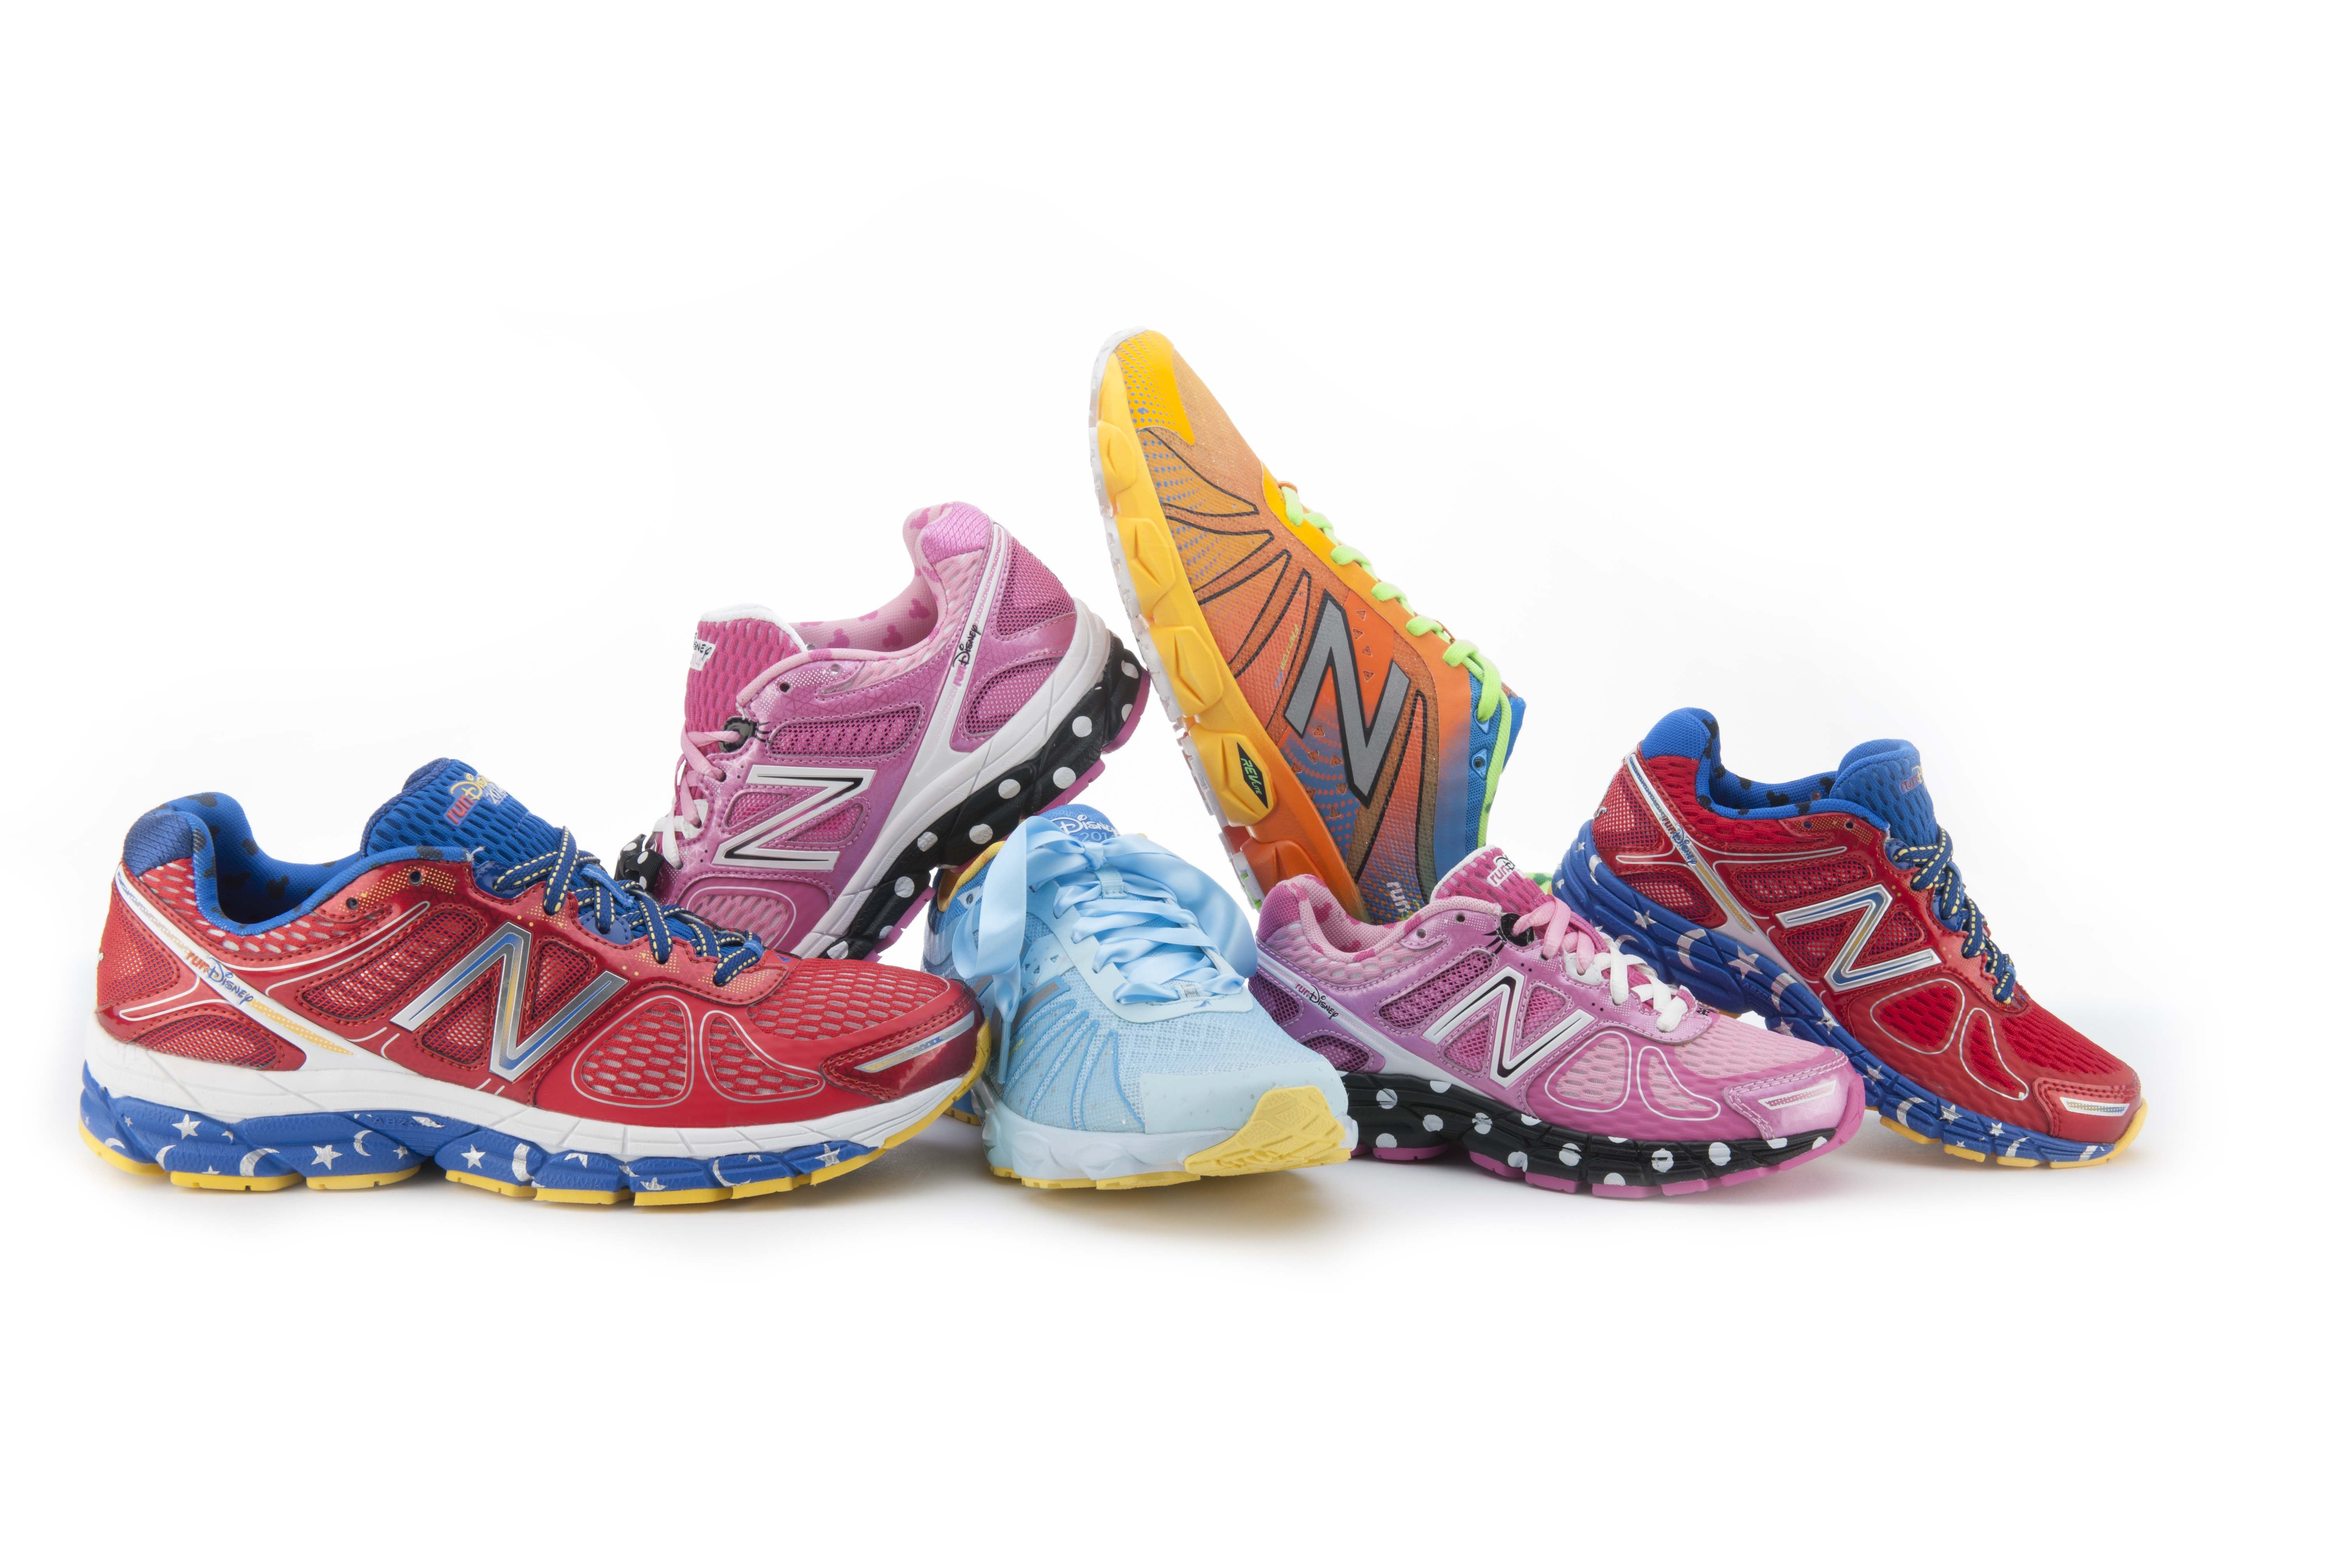 a6ef67ec26 New Balance launches two new shoes after huge success in 2013 ...